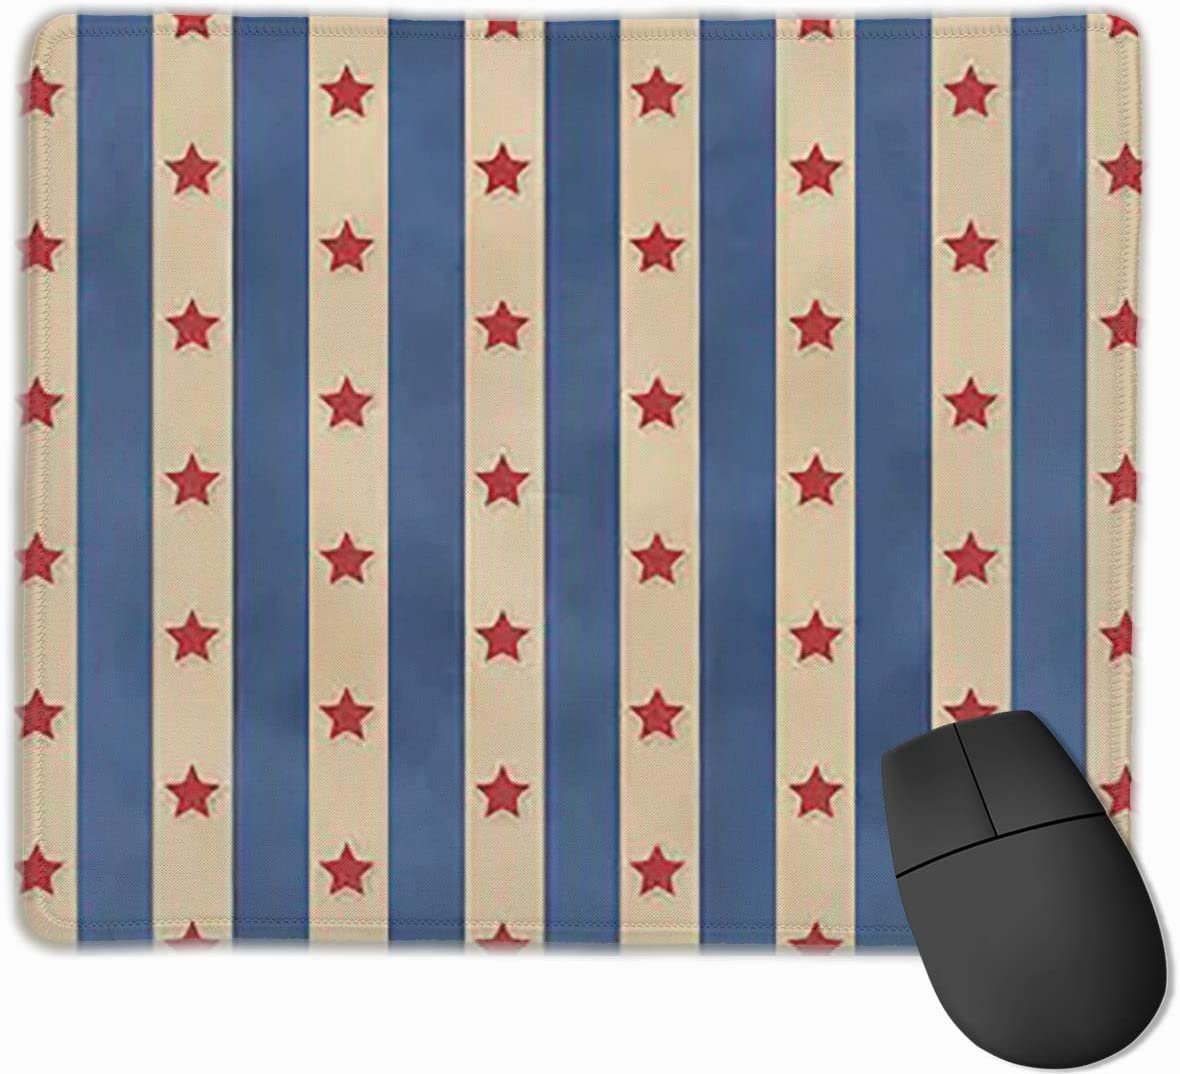 2530 Joyce-life Faded Stars Stripes Pattern Mouse Pads for Computers Laptop Non-Slip Rubber Base Stitched Edge Waterproof Office Mouse Pad Office Gaming Computer at Home Or Work Size